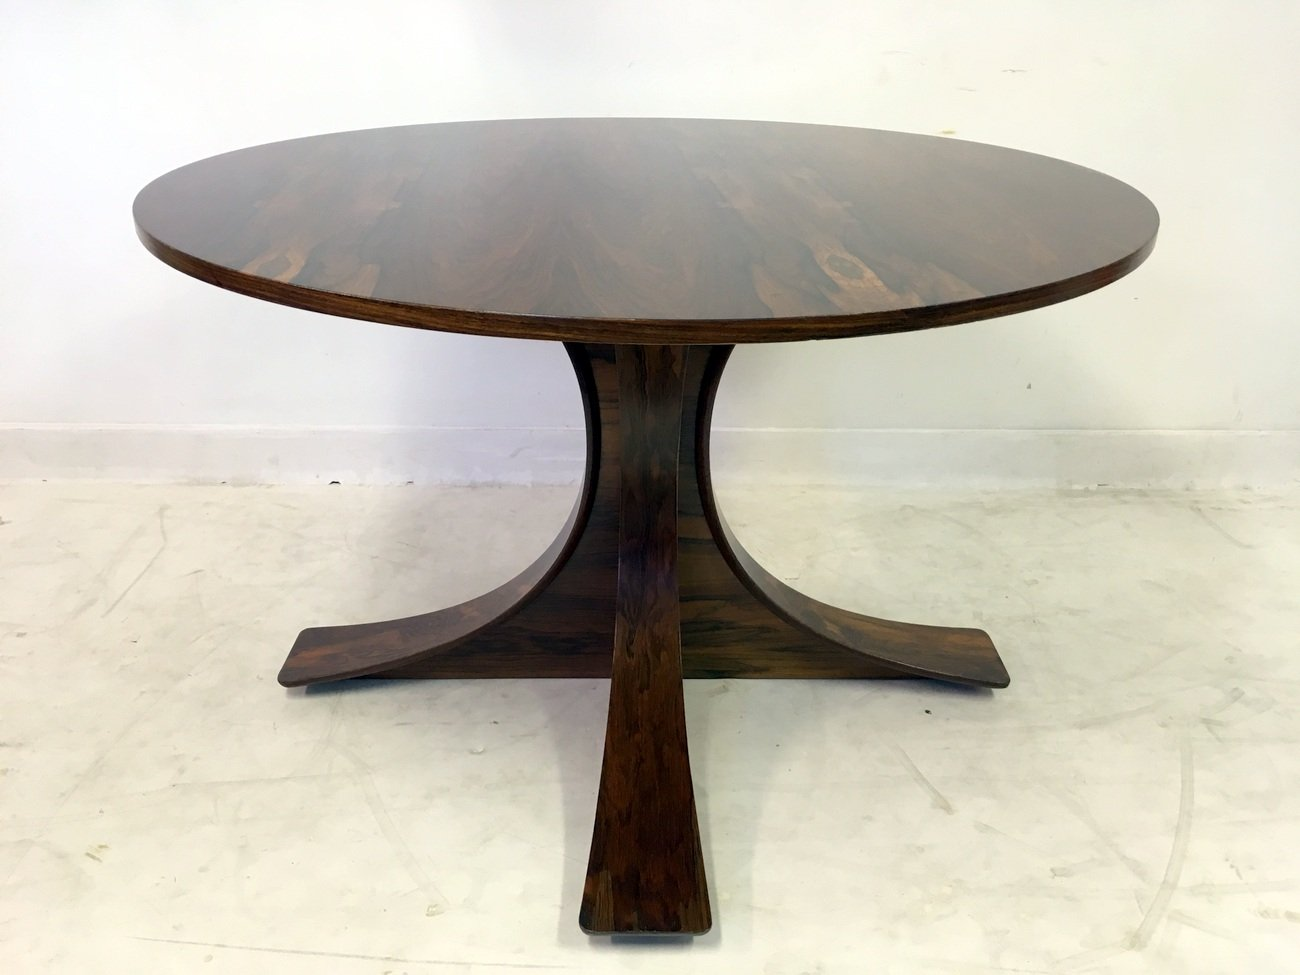 Italian Rosewood Dining Table 1950s for sale at Pamono : italian rosewood dining table 1950s 8 from www.pamono.com size 1300 x 975 jpeg 201kB